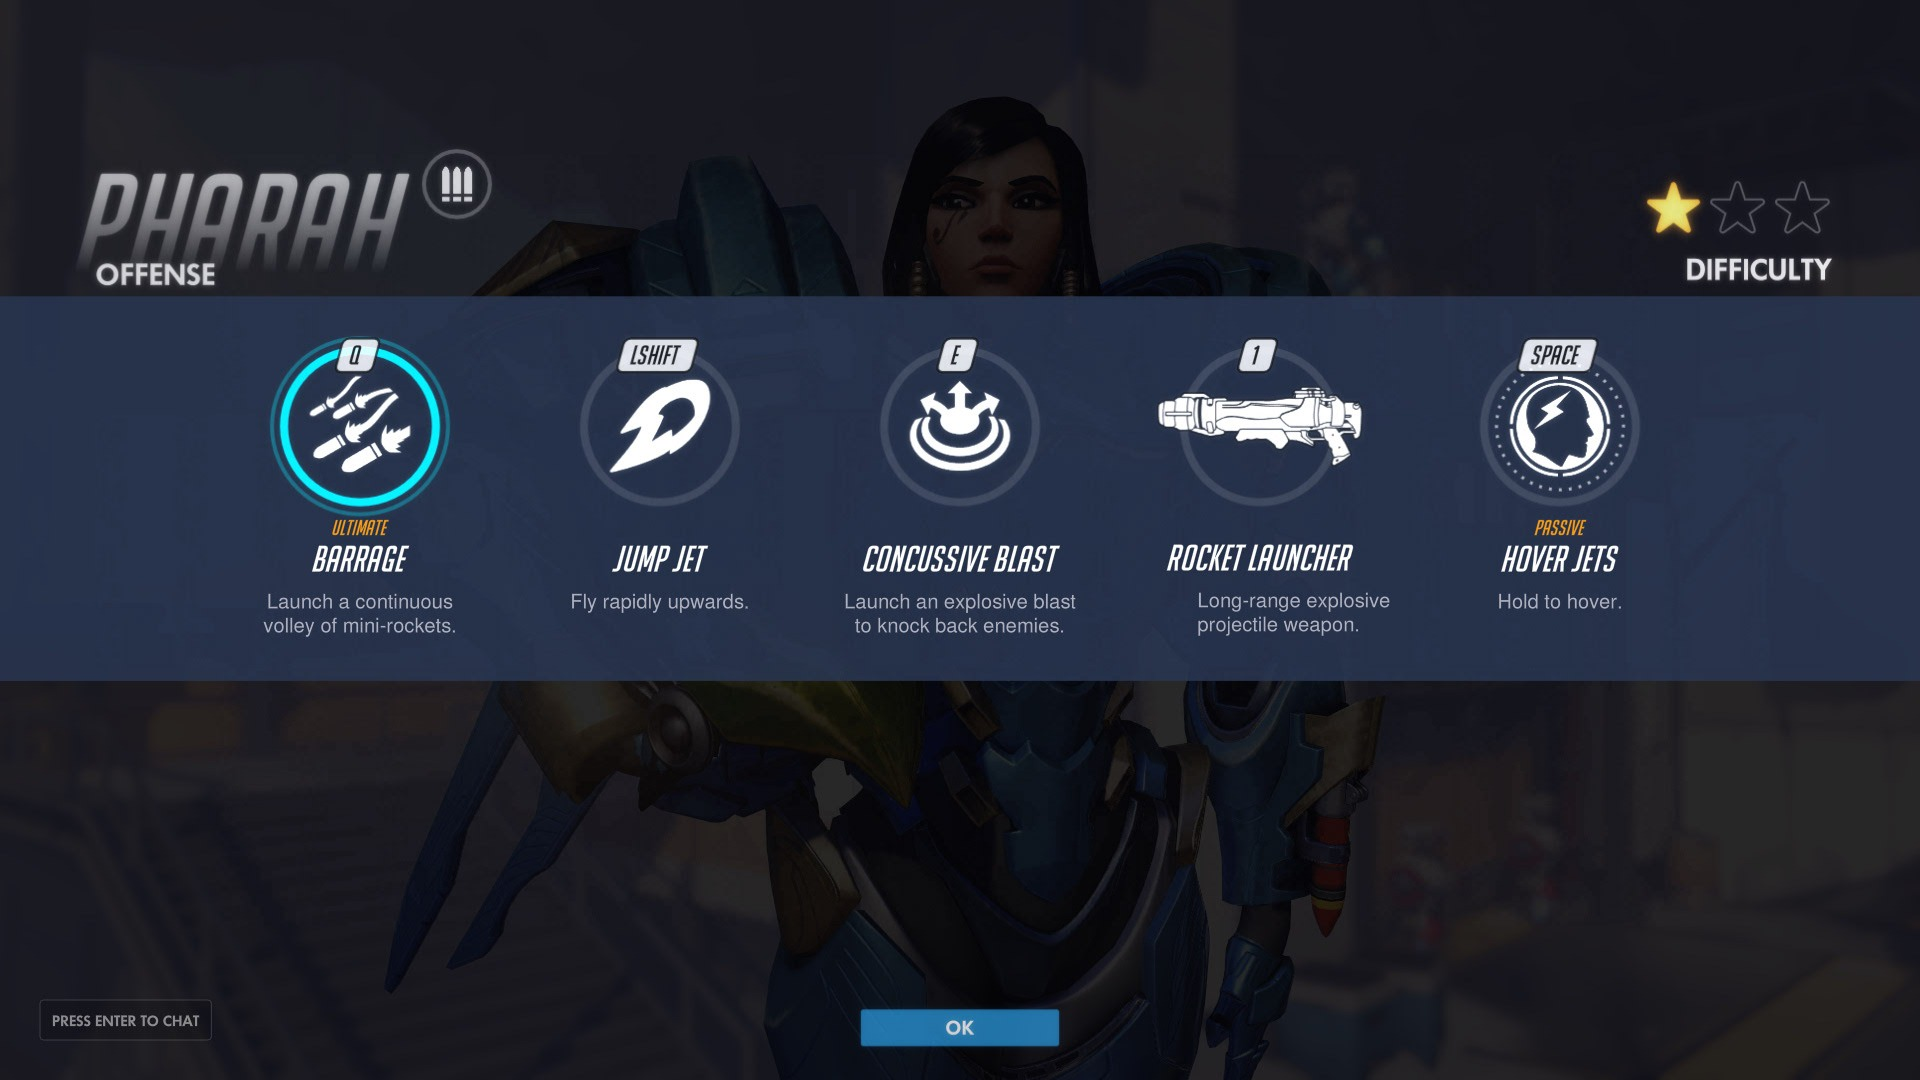 Pharah Offense Abilities Overwatch